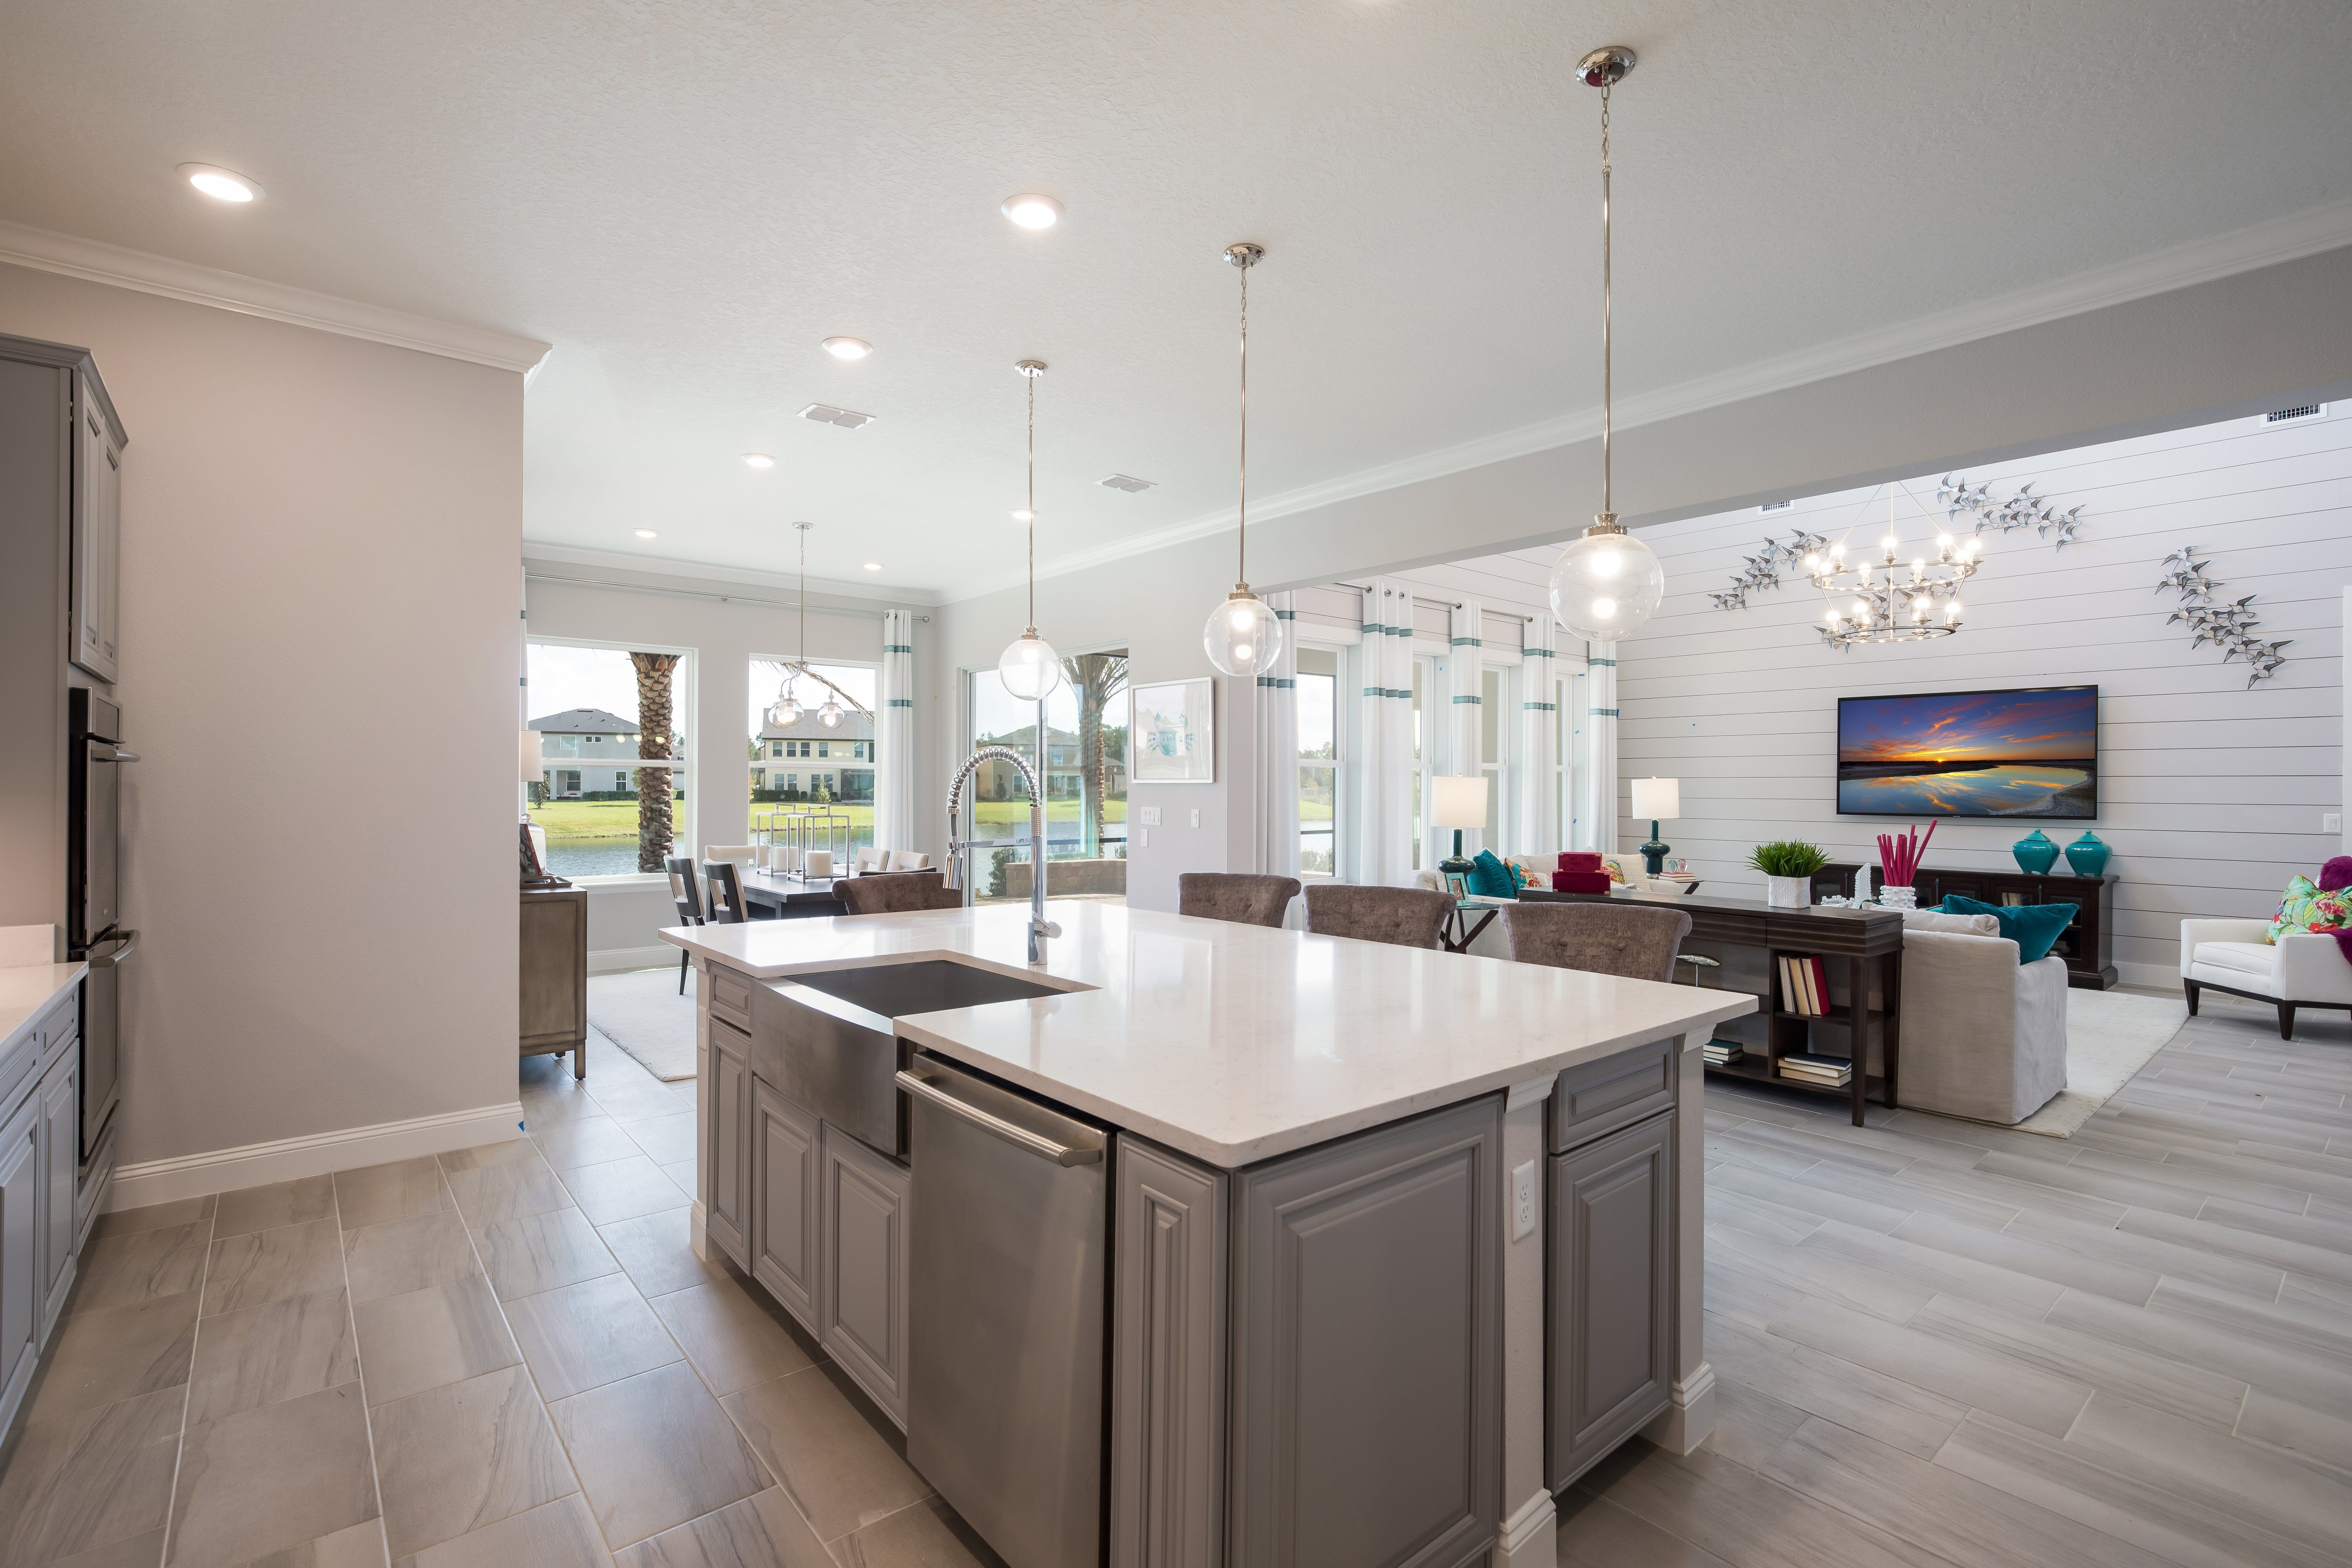 Kitchen featured in the CRAWFORD By Lennar in Jacksonville-St. Augustine, FL